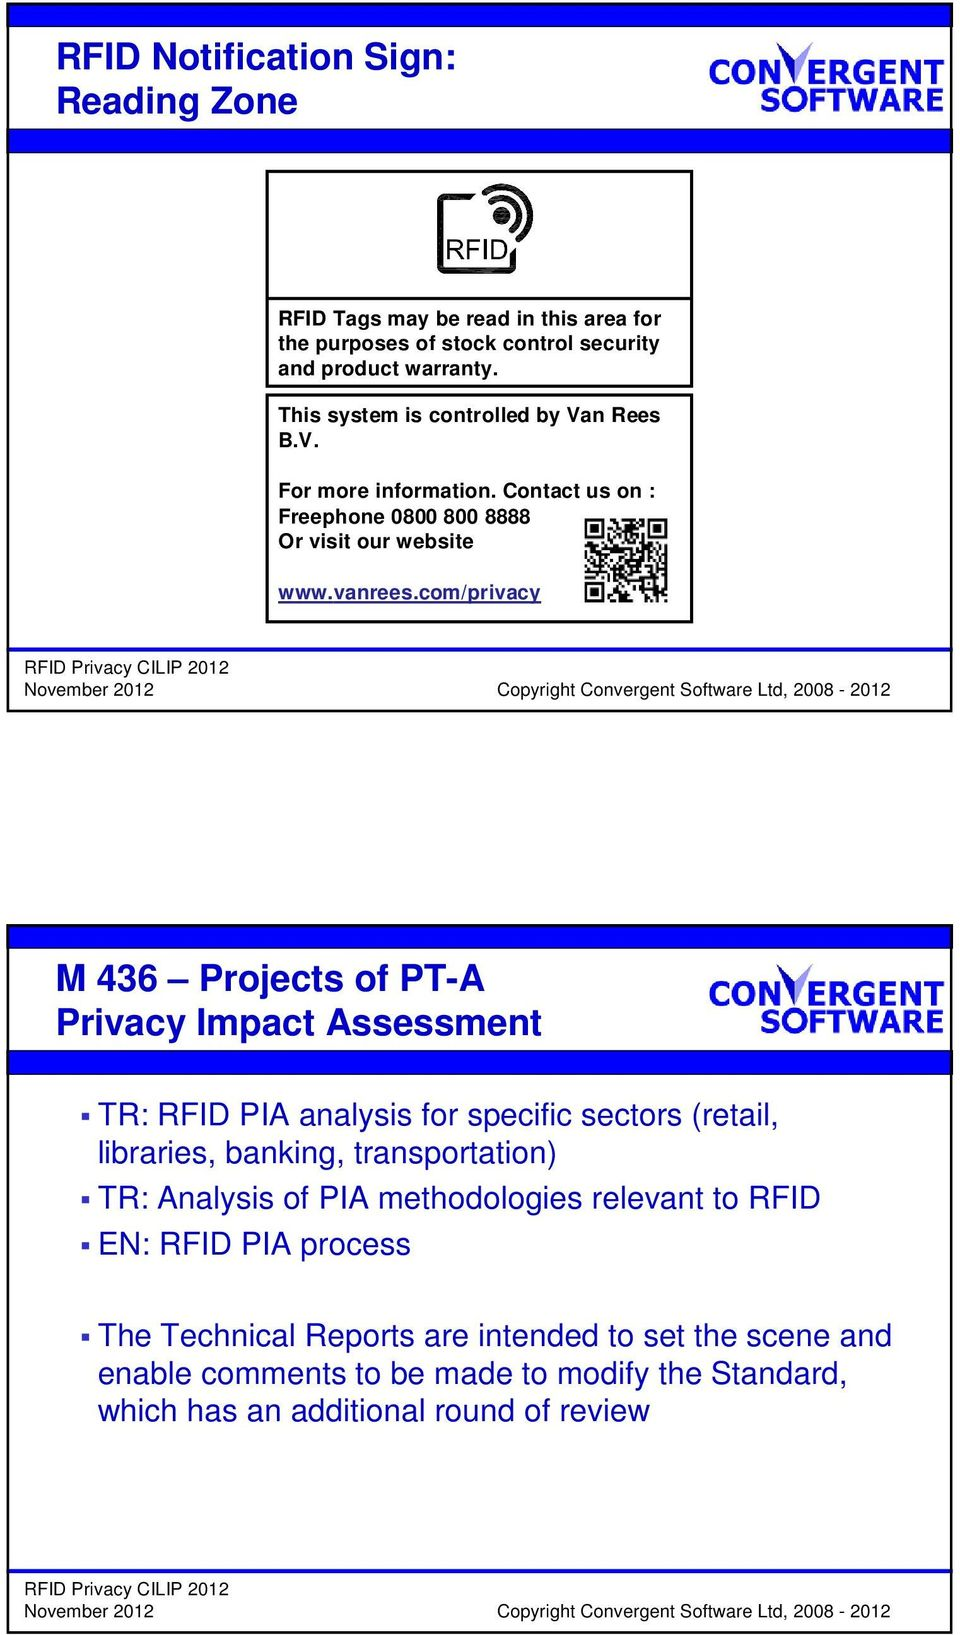 com/privacy M 436 Projects of PT-A Privacy Impact Assessment TR: RFID PIA analysis for specific sectors (retail, libraries, banking, transportation) TR: